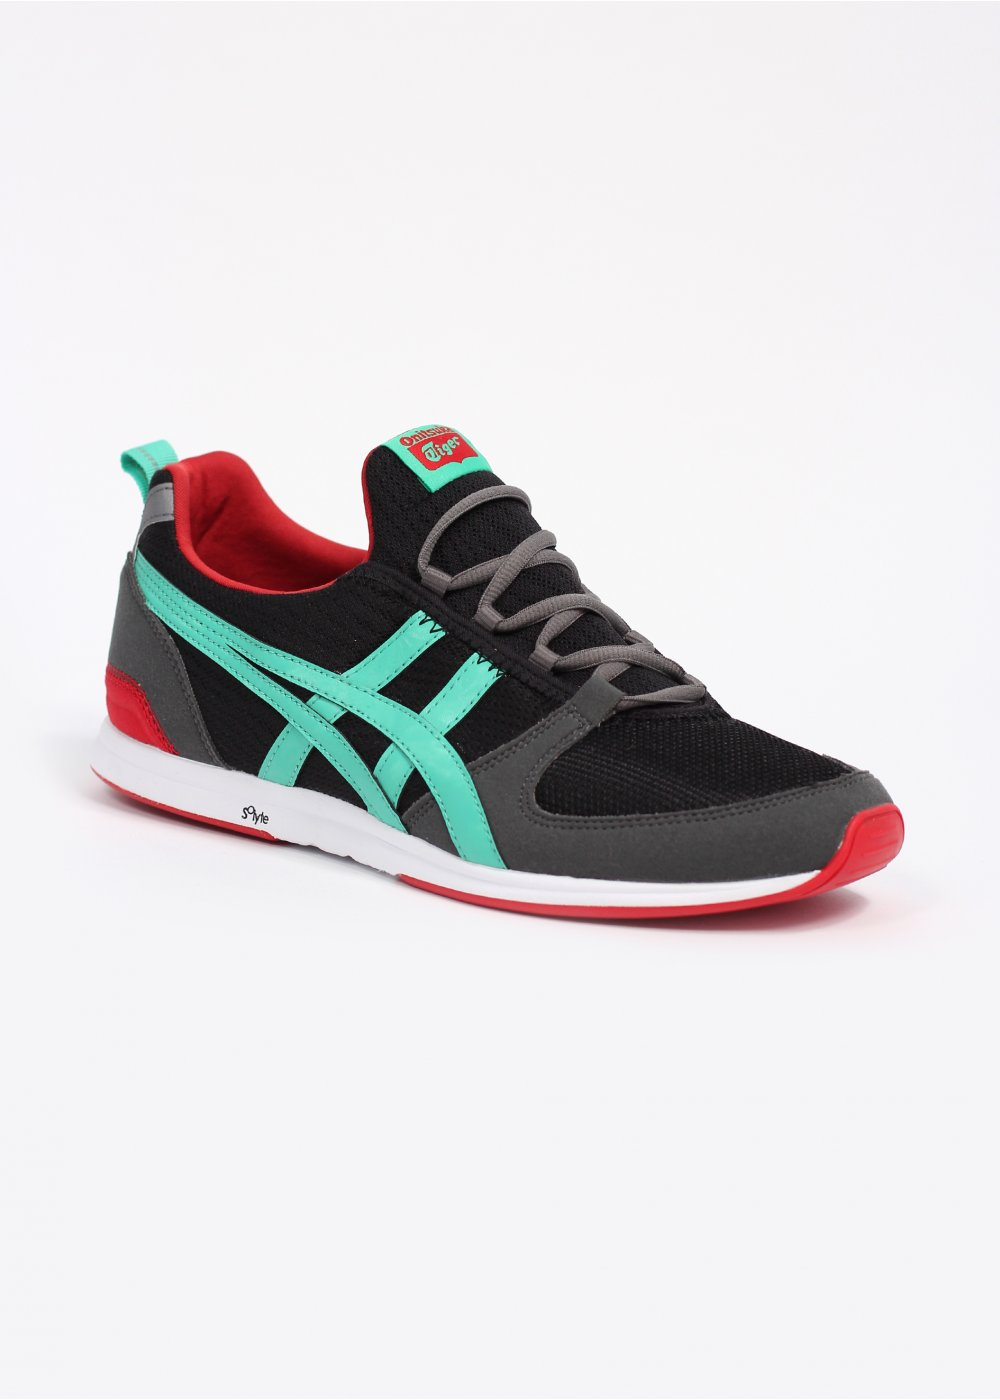 asics onitsuka tiger ult racer trainers black mint. Black Bedroom Furniture Sets. Home Design Ideas